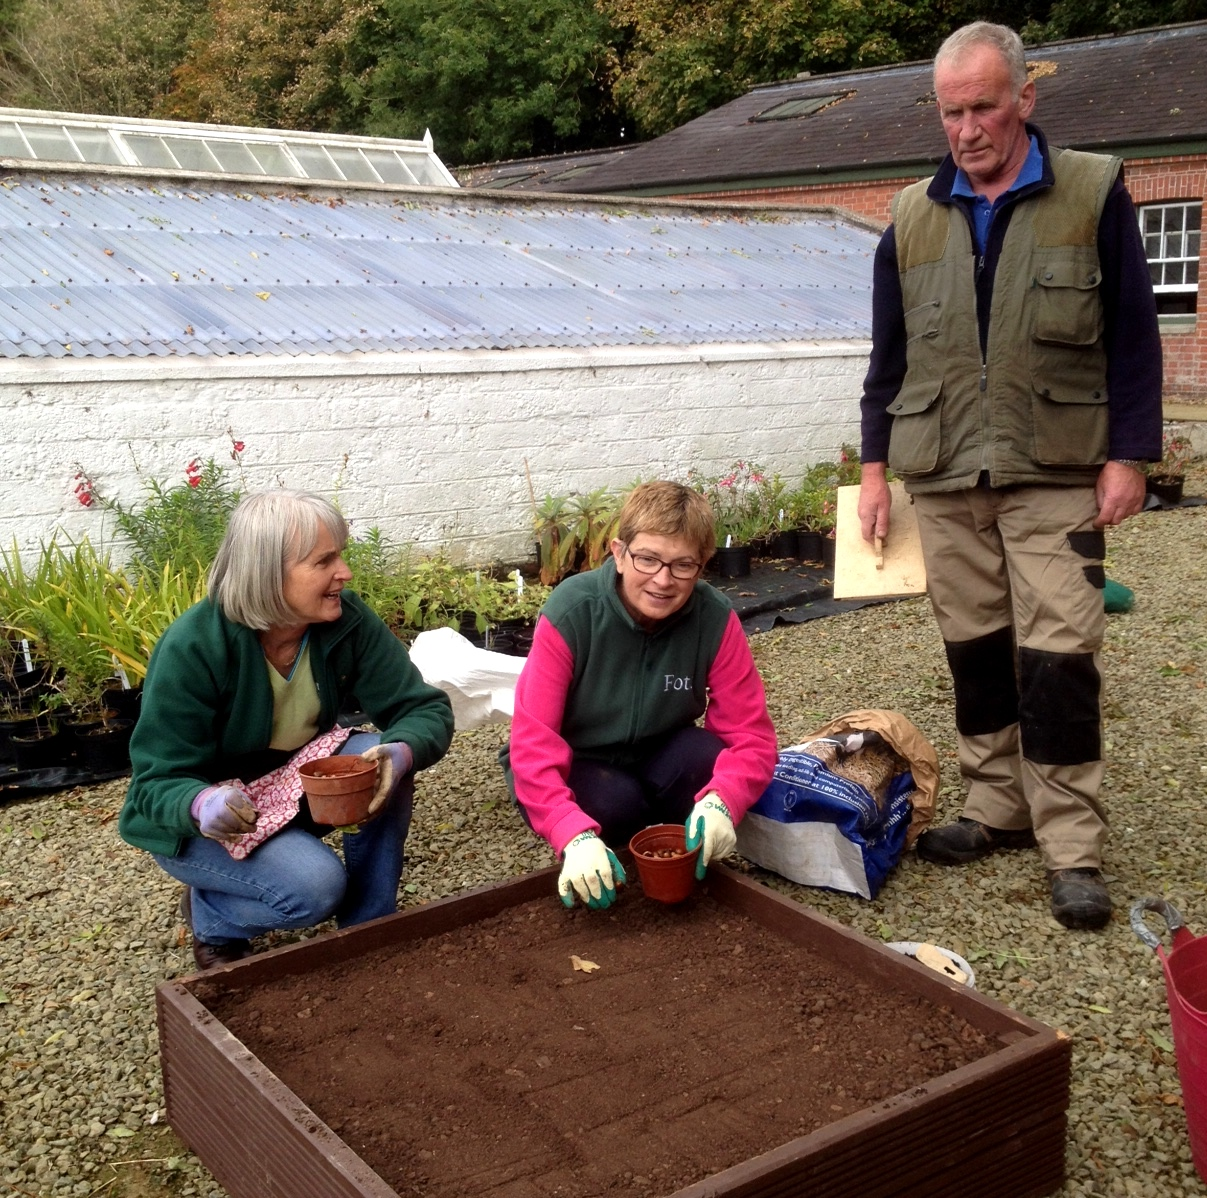 Ann, Gabriella, Bernard. Setting acorns in the seed box.